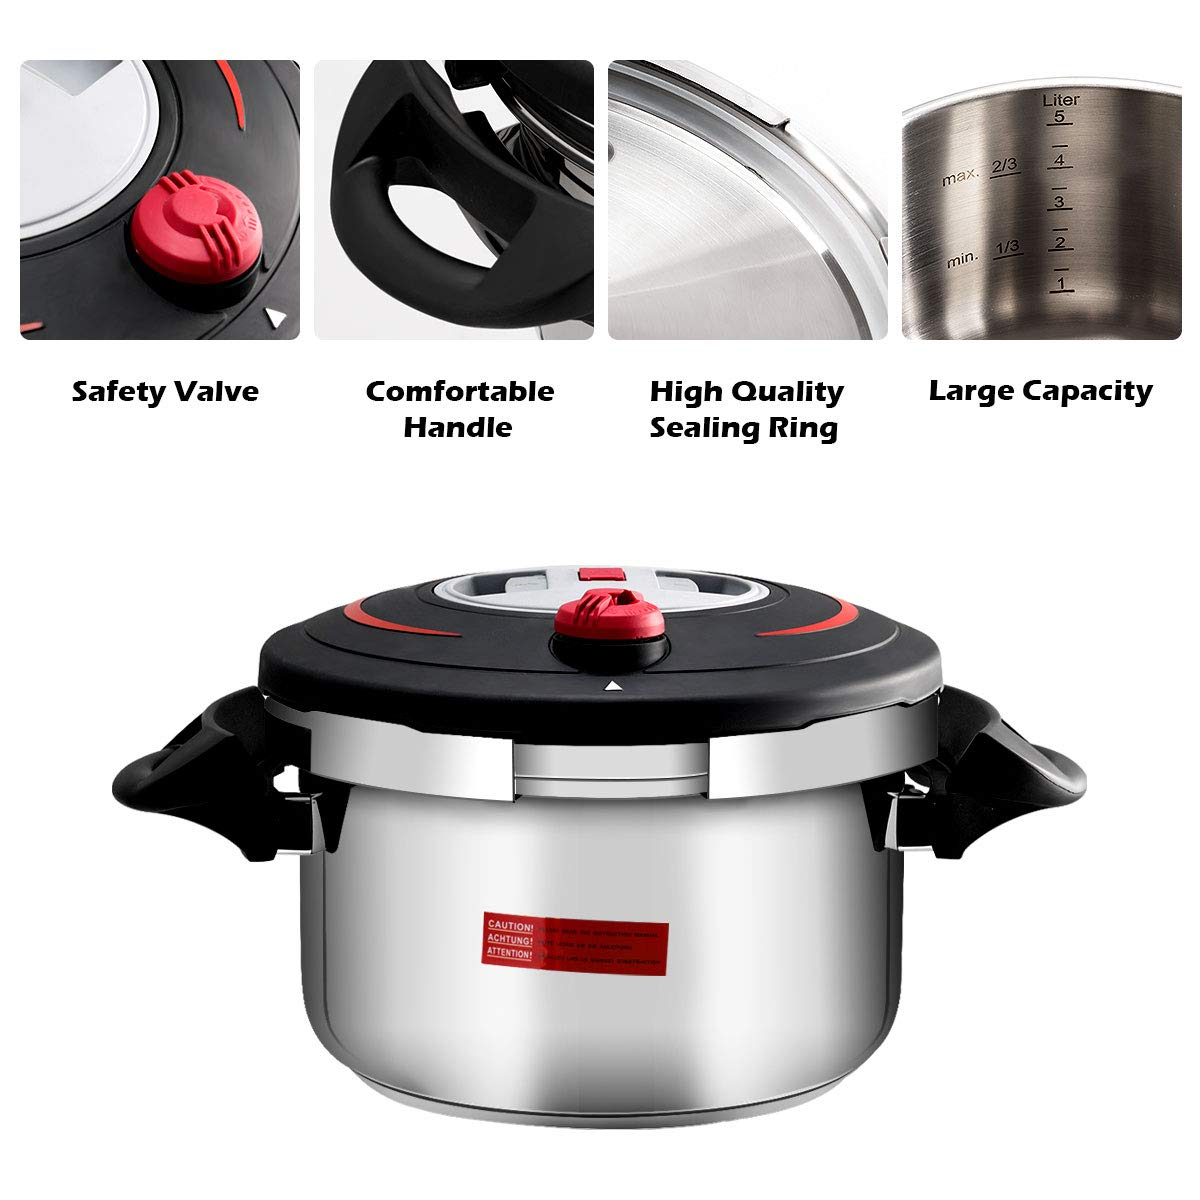 Stainless Steel Pressure Cooker with Side Grips Steamer for Gas Stoves COSTWAY 6L Multifunction Pressure Cooker 2 Working Pressure Anti-Skid Handles Induction Cookers